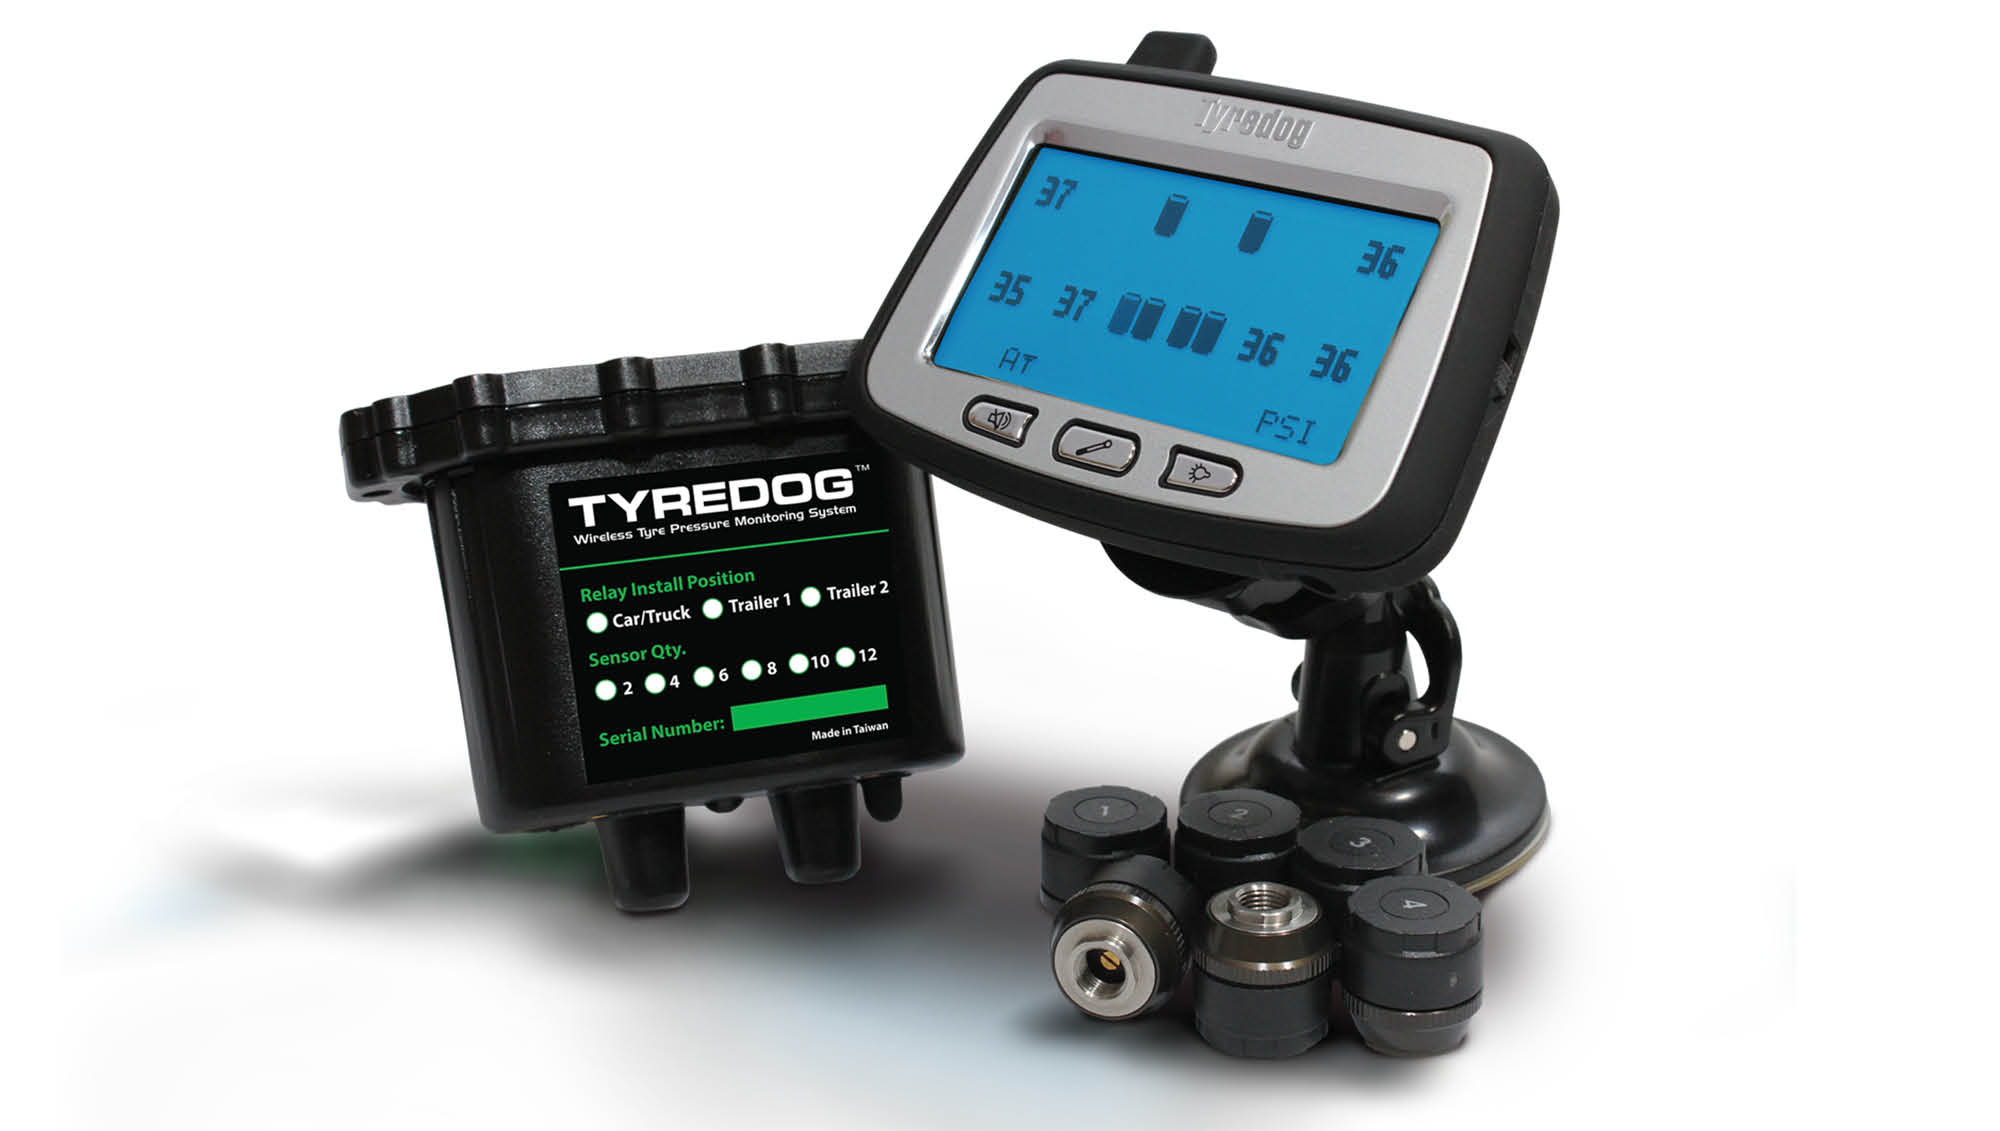 TYREDOG Wireless Tyre Pressure Monitoring Kit TD-2700F-X kit